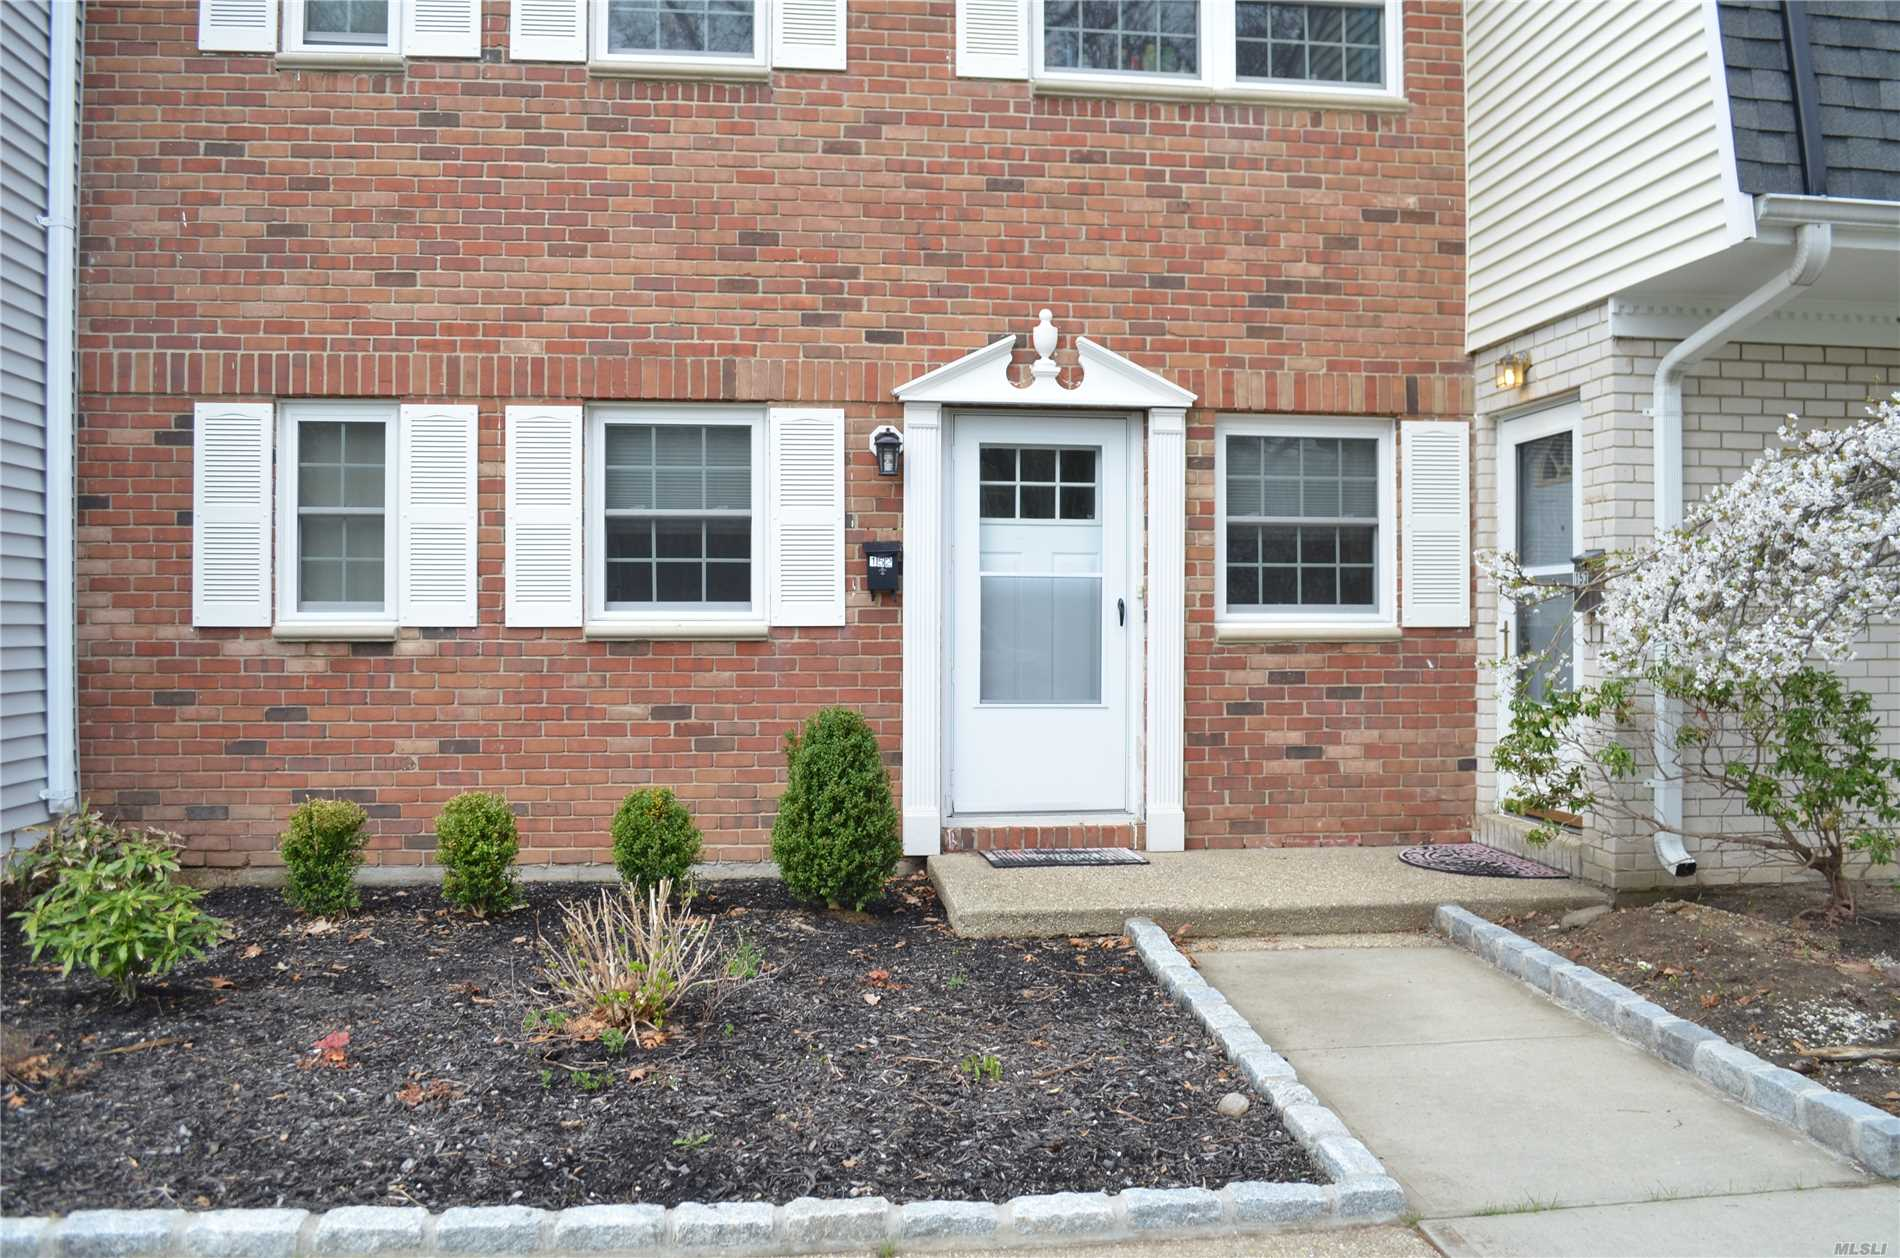 Mint 1 Bedroom, Full Bath in Spring Meadows Features Updated Kitchen with Stainless Steel Appliances & Granite Counters, Newer Washer & Dryer, 4 Year Young Floors, Slider To Rear, Community In-Ground Pool, Tennis Court & Playground. Monthly Common Charges: $832.19.